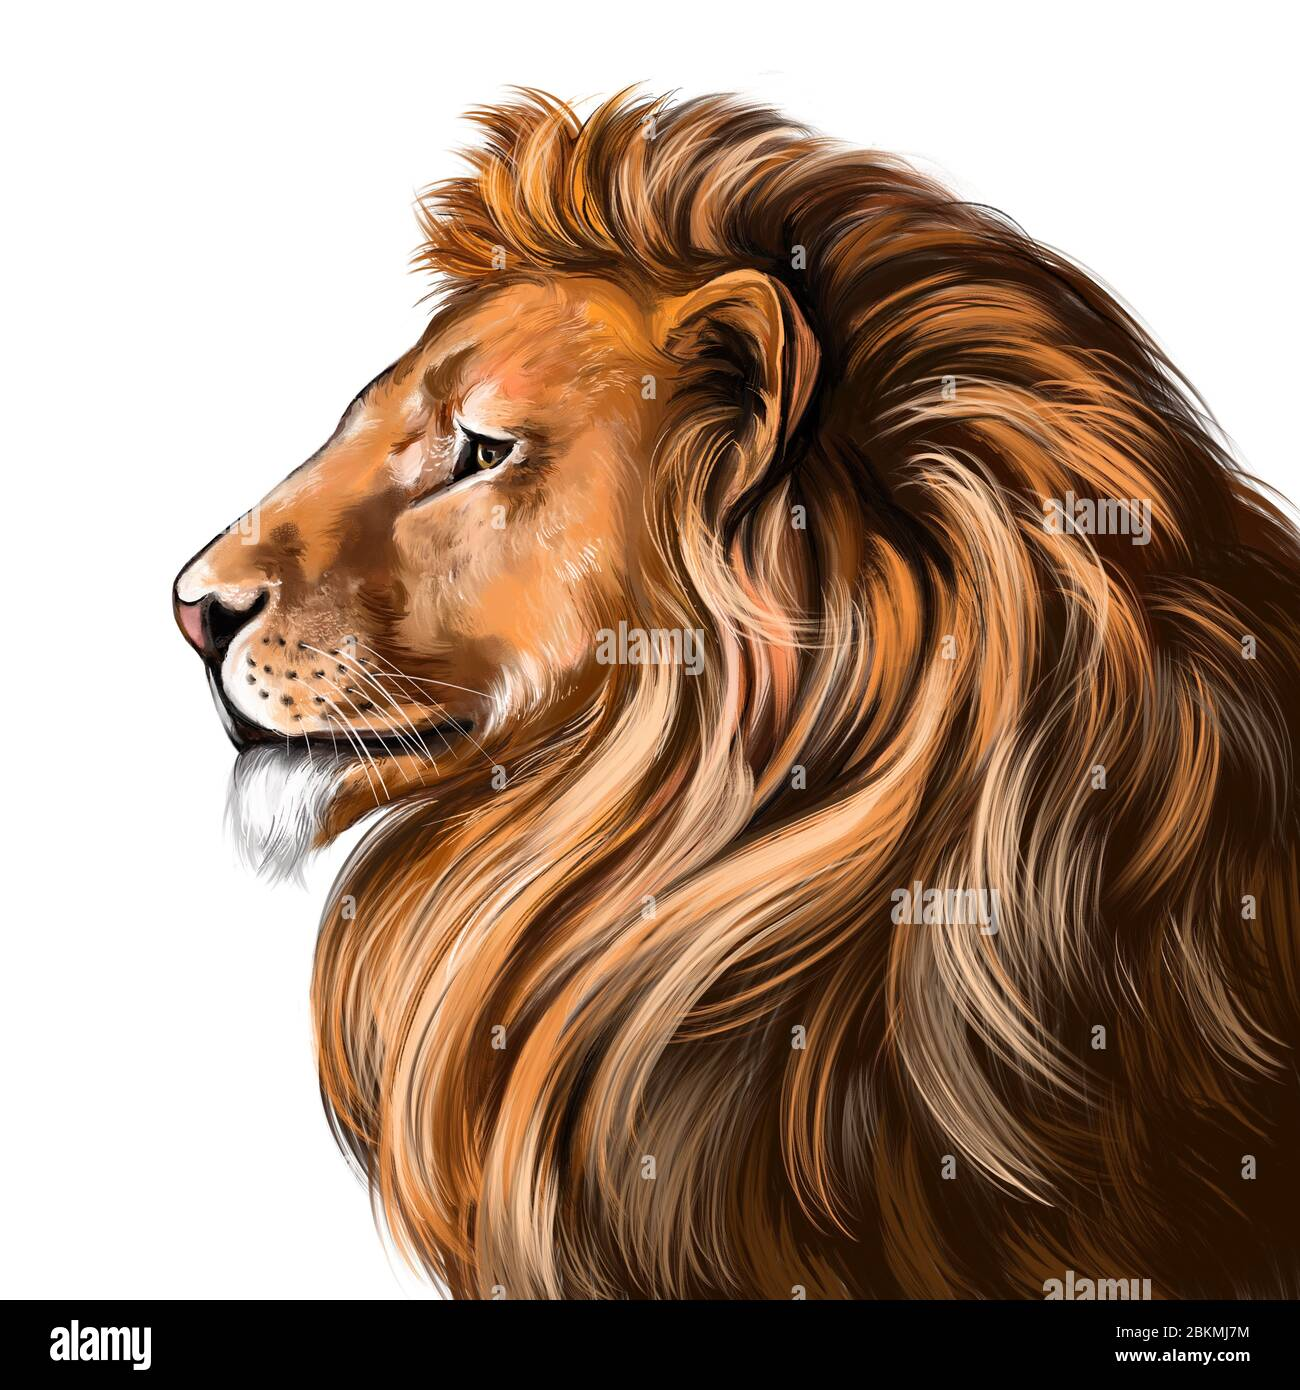 Animal Lion King Of Beasts Art Illustration Painted With Watercolors Isolated On White Background Stock Photo Alamy Cute drowing of lion head outline. https www alamy com animal lion king of beasts art illustration painted with watercolors isolated on white background image356339192 html